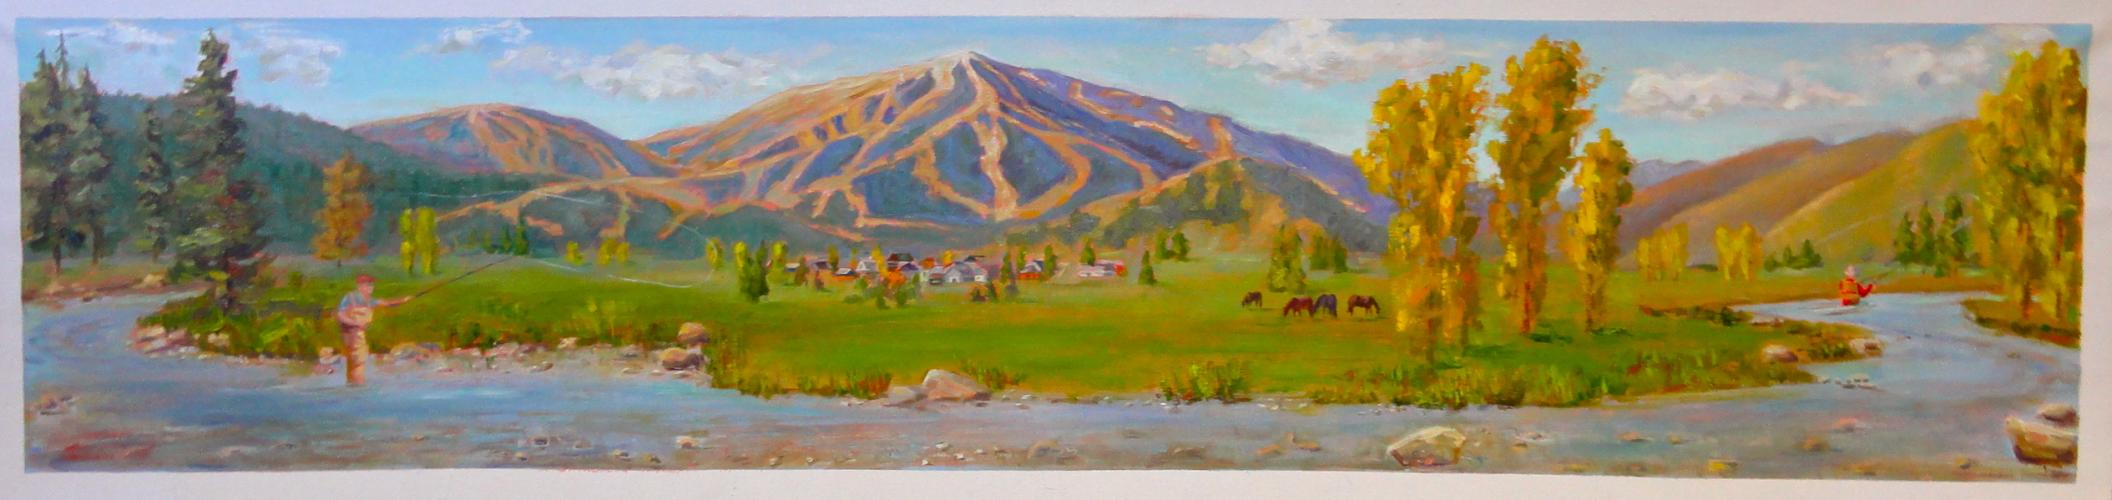 Sun Valley Wine Auction Original Painting